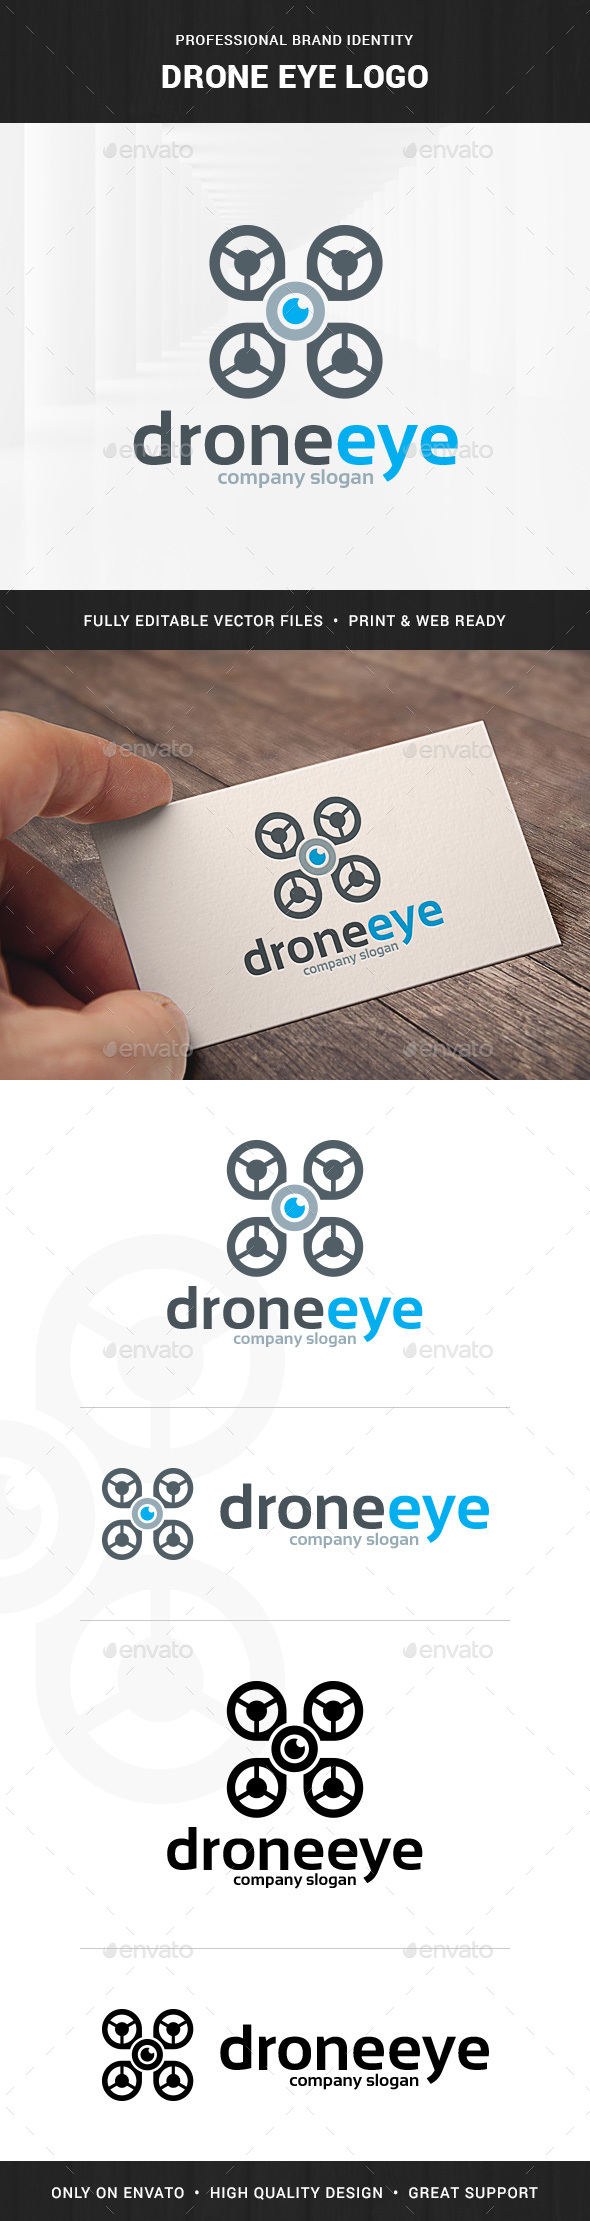 Drone Eye Logo Template - Objects Logo Templates